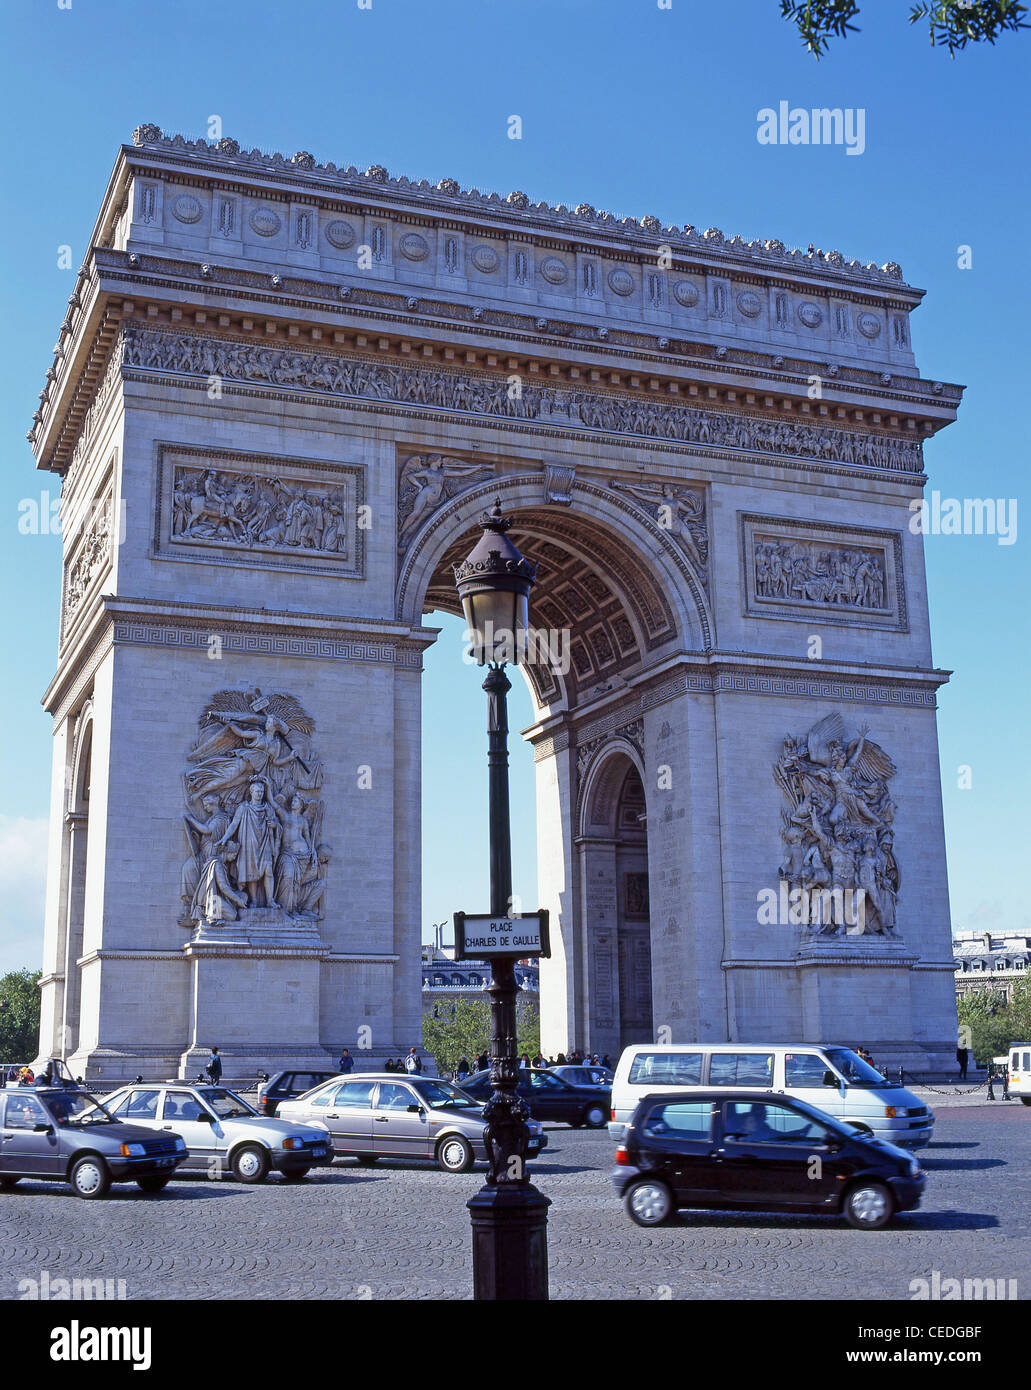 L'Arc de Triomphe, Place Charles de Gaulle, Paris, Île-de-France, France Photo Stock